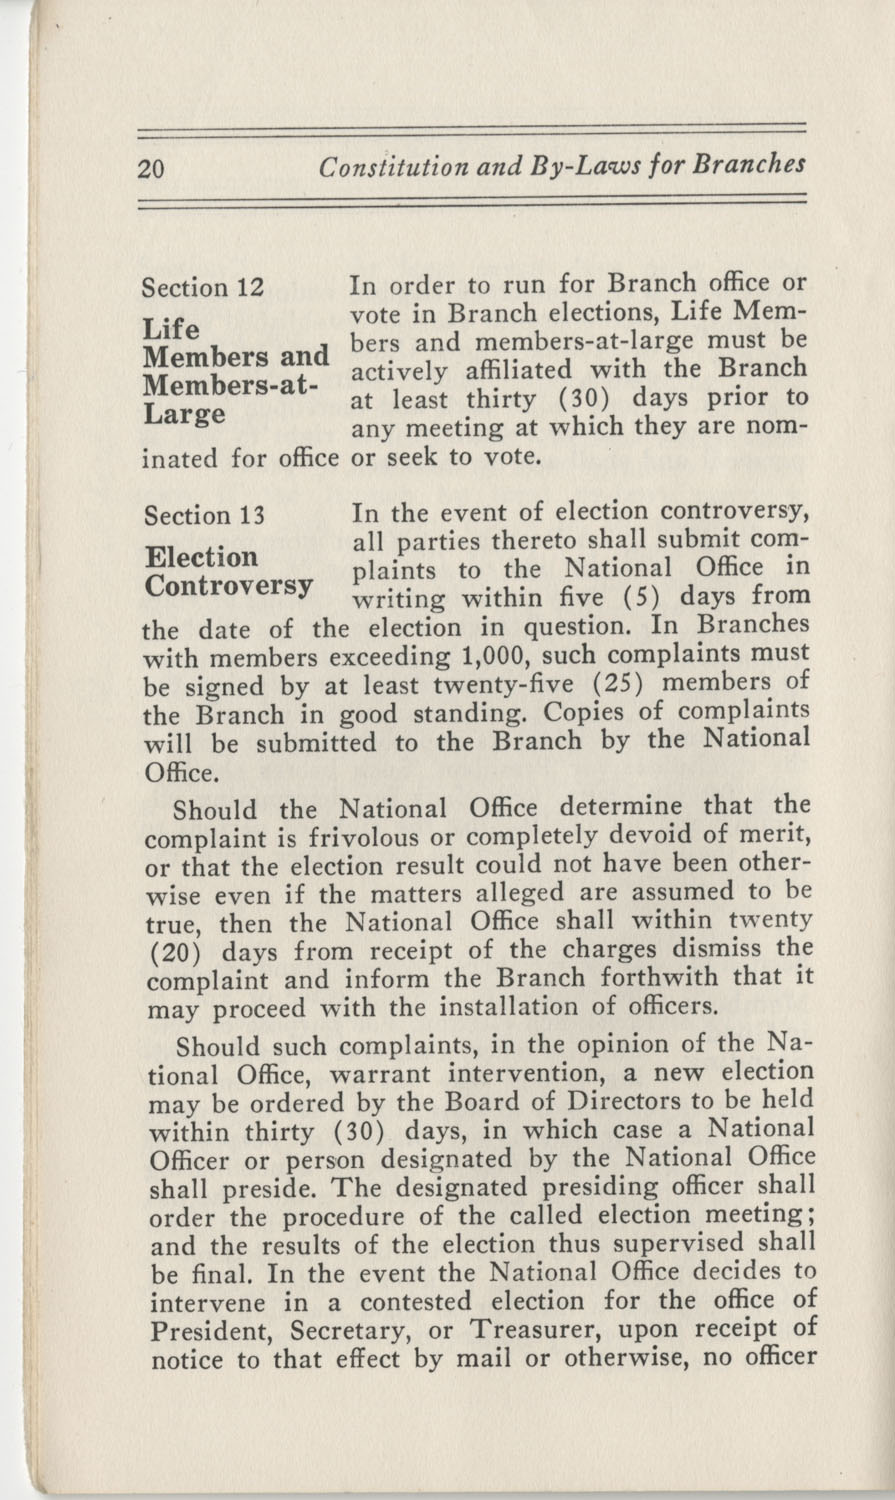 Constitutions and By-Laws, September 1960, Page 20